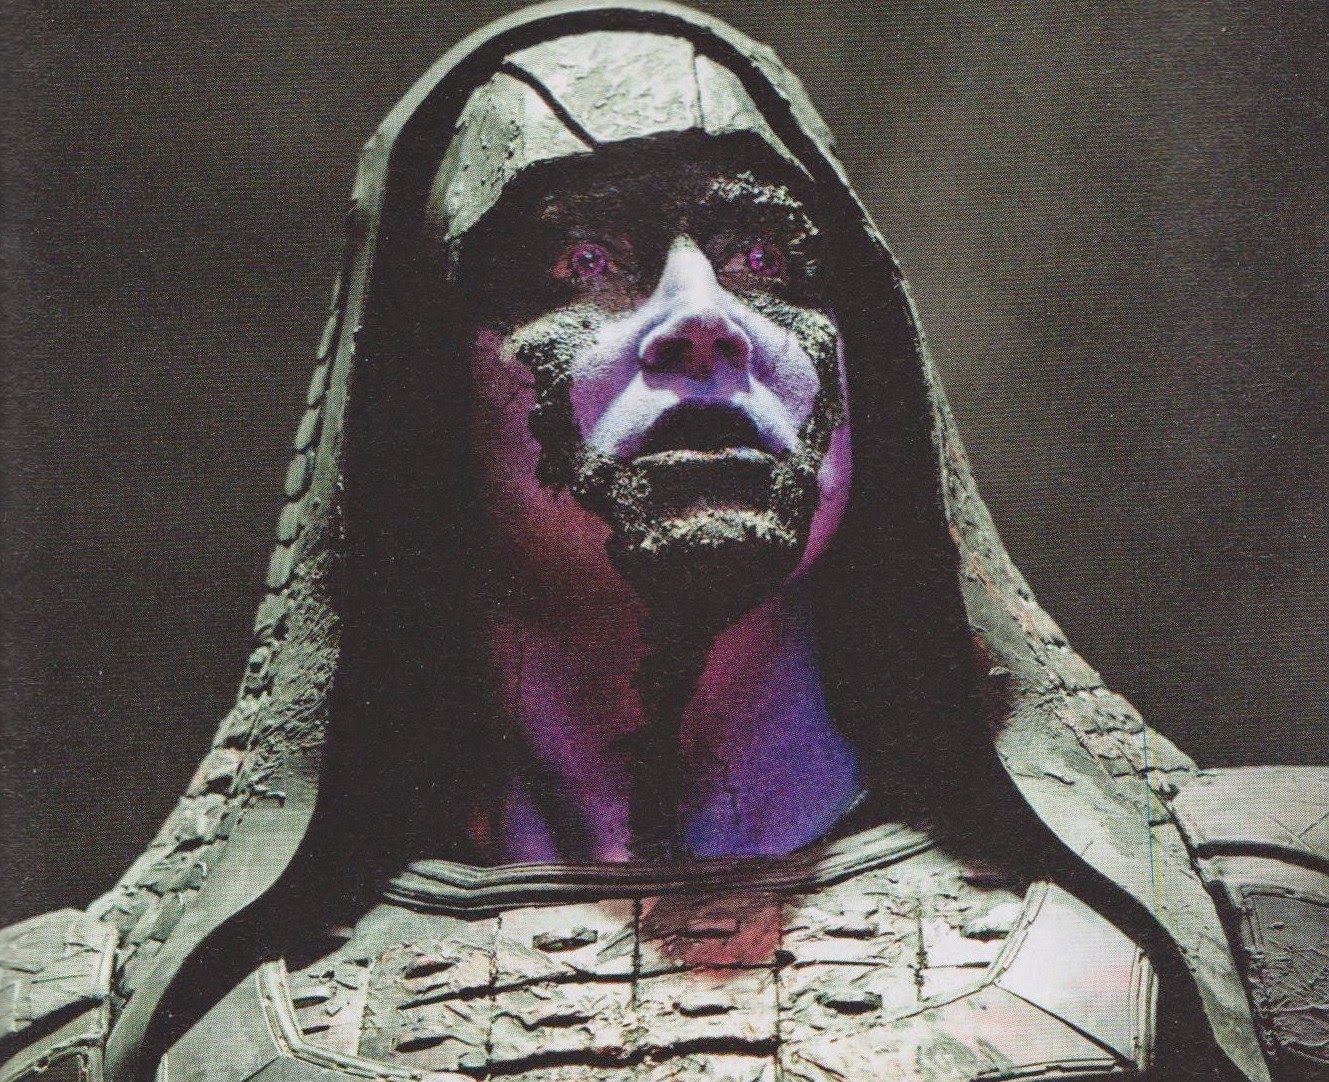 Lee as Ronan in Guardians of the Galaxy